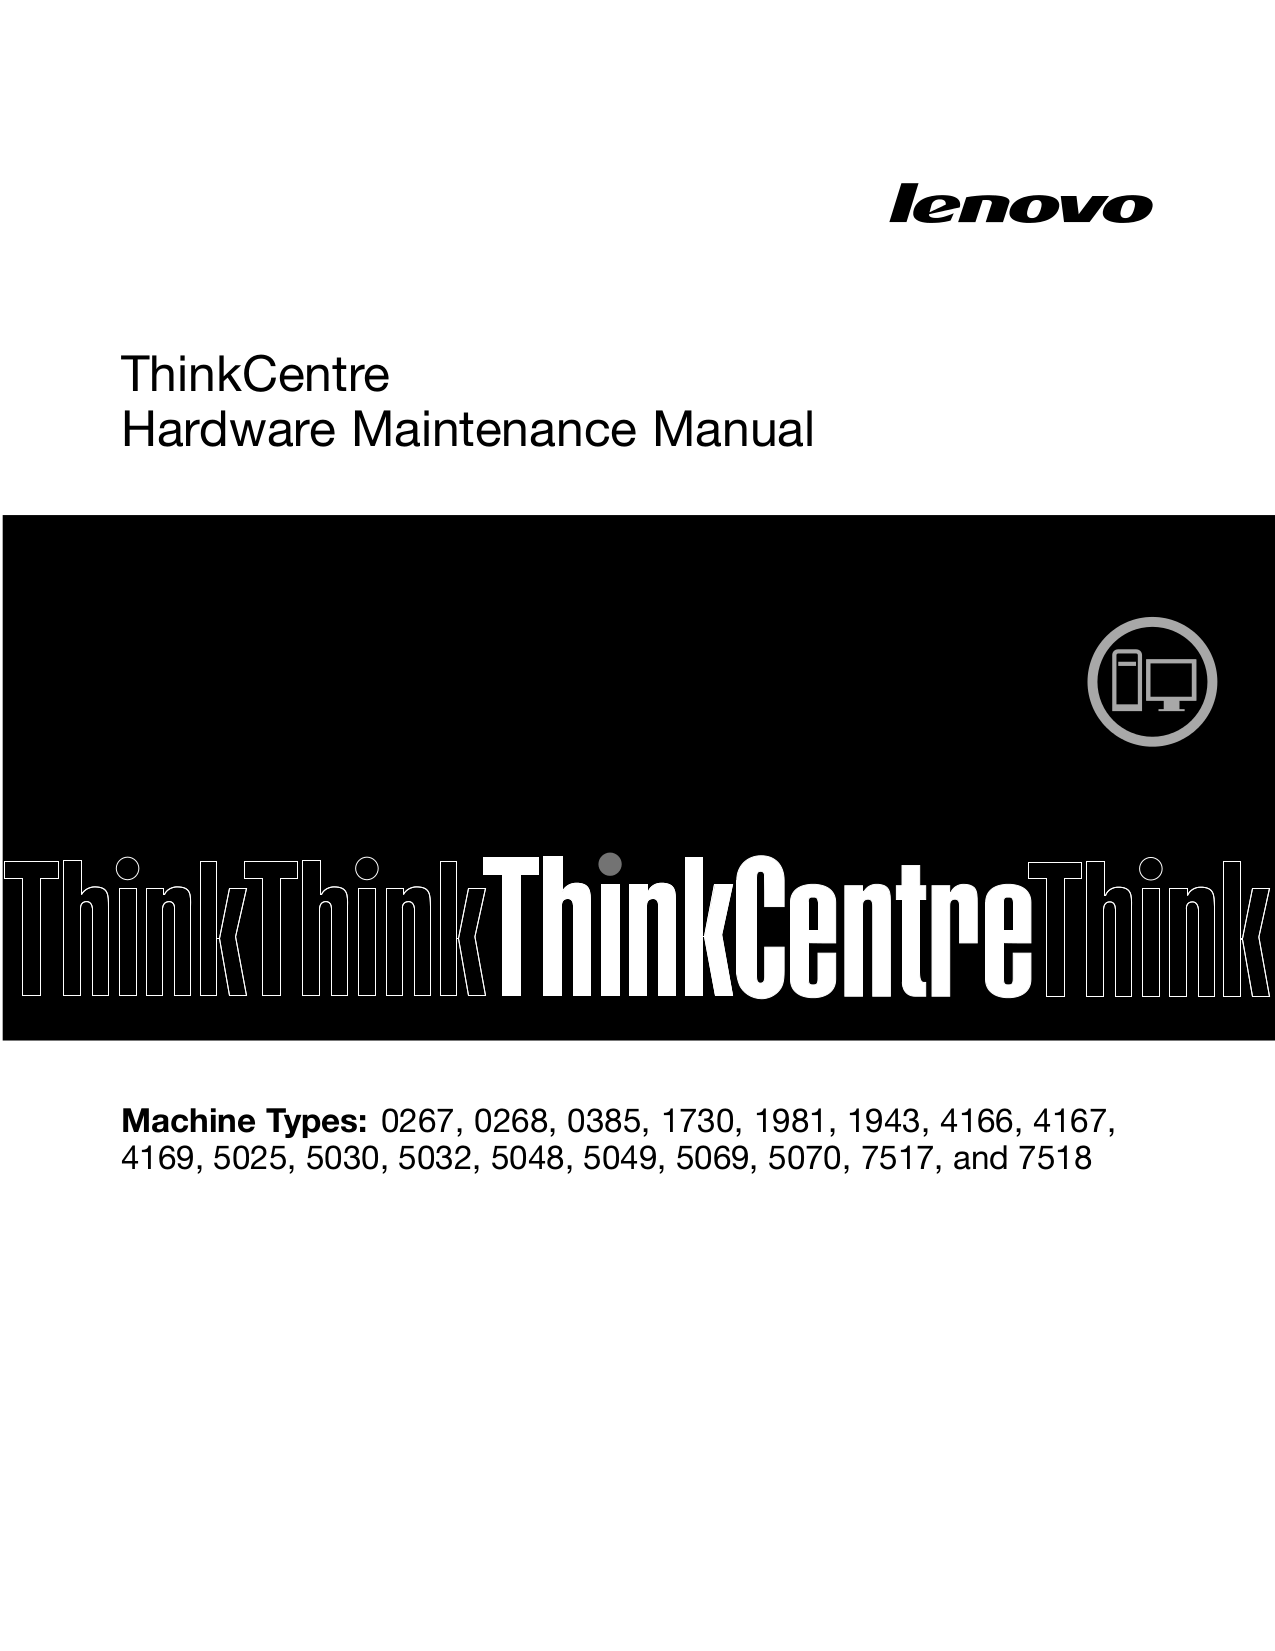 pdf for Lenovo Desktop ThinkCentre M81 7518 manual